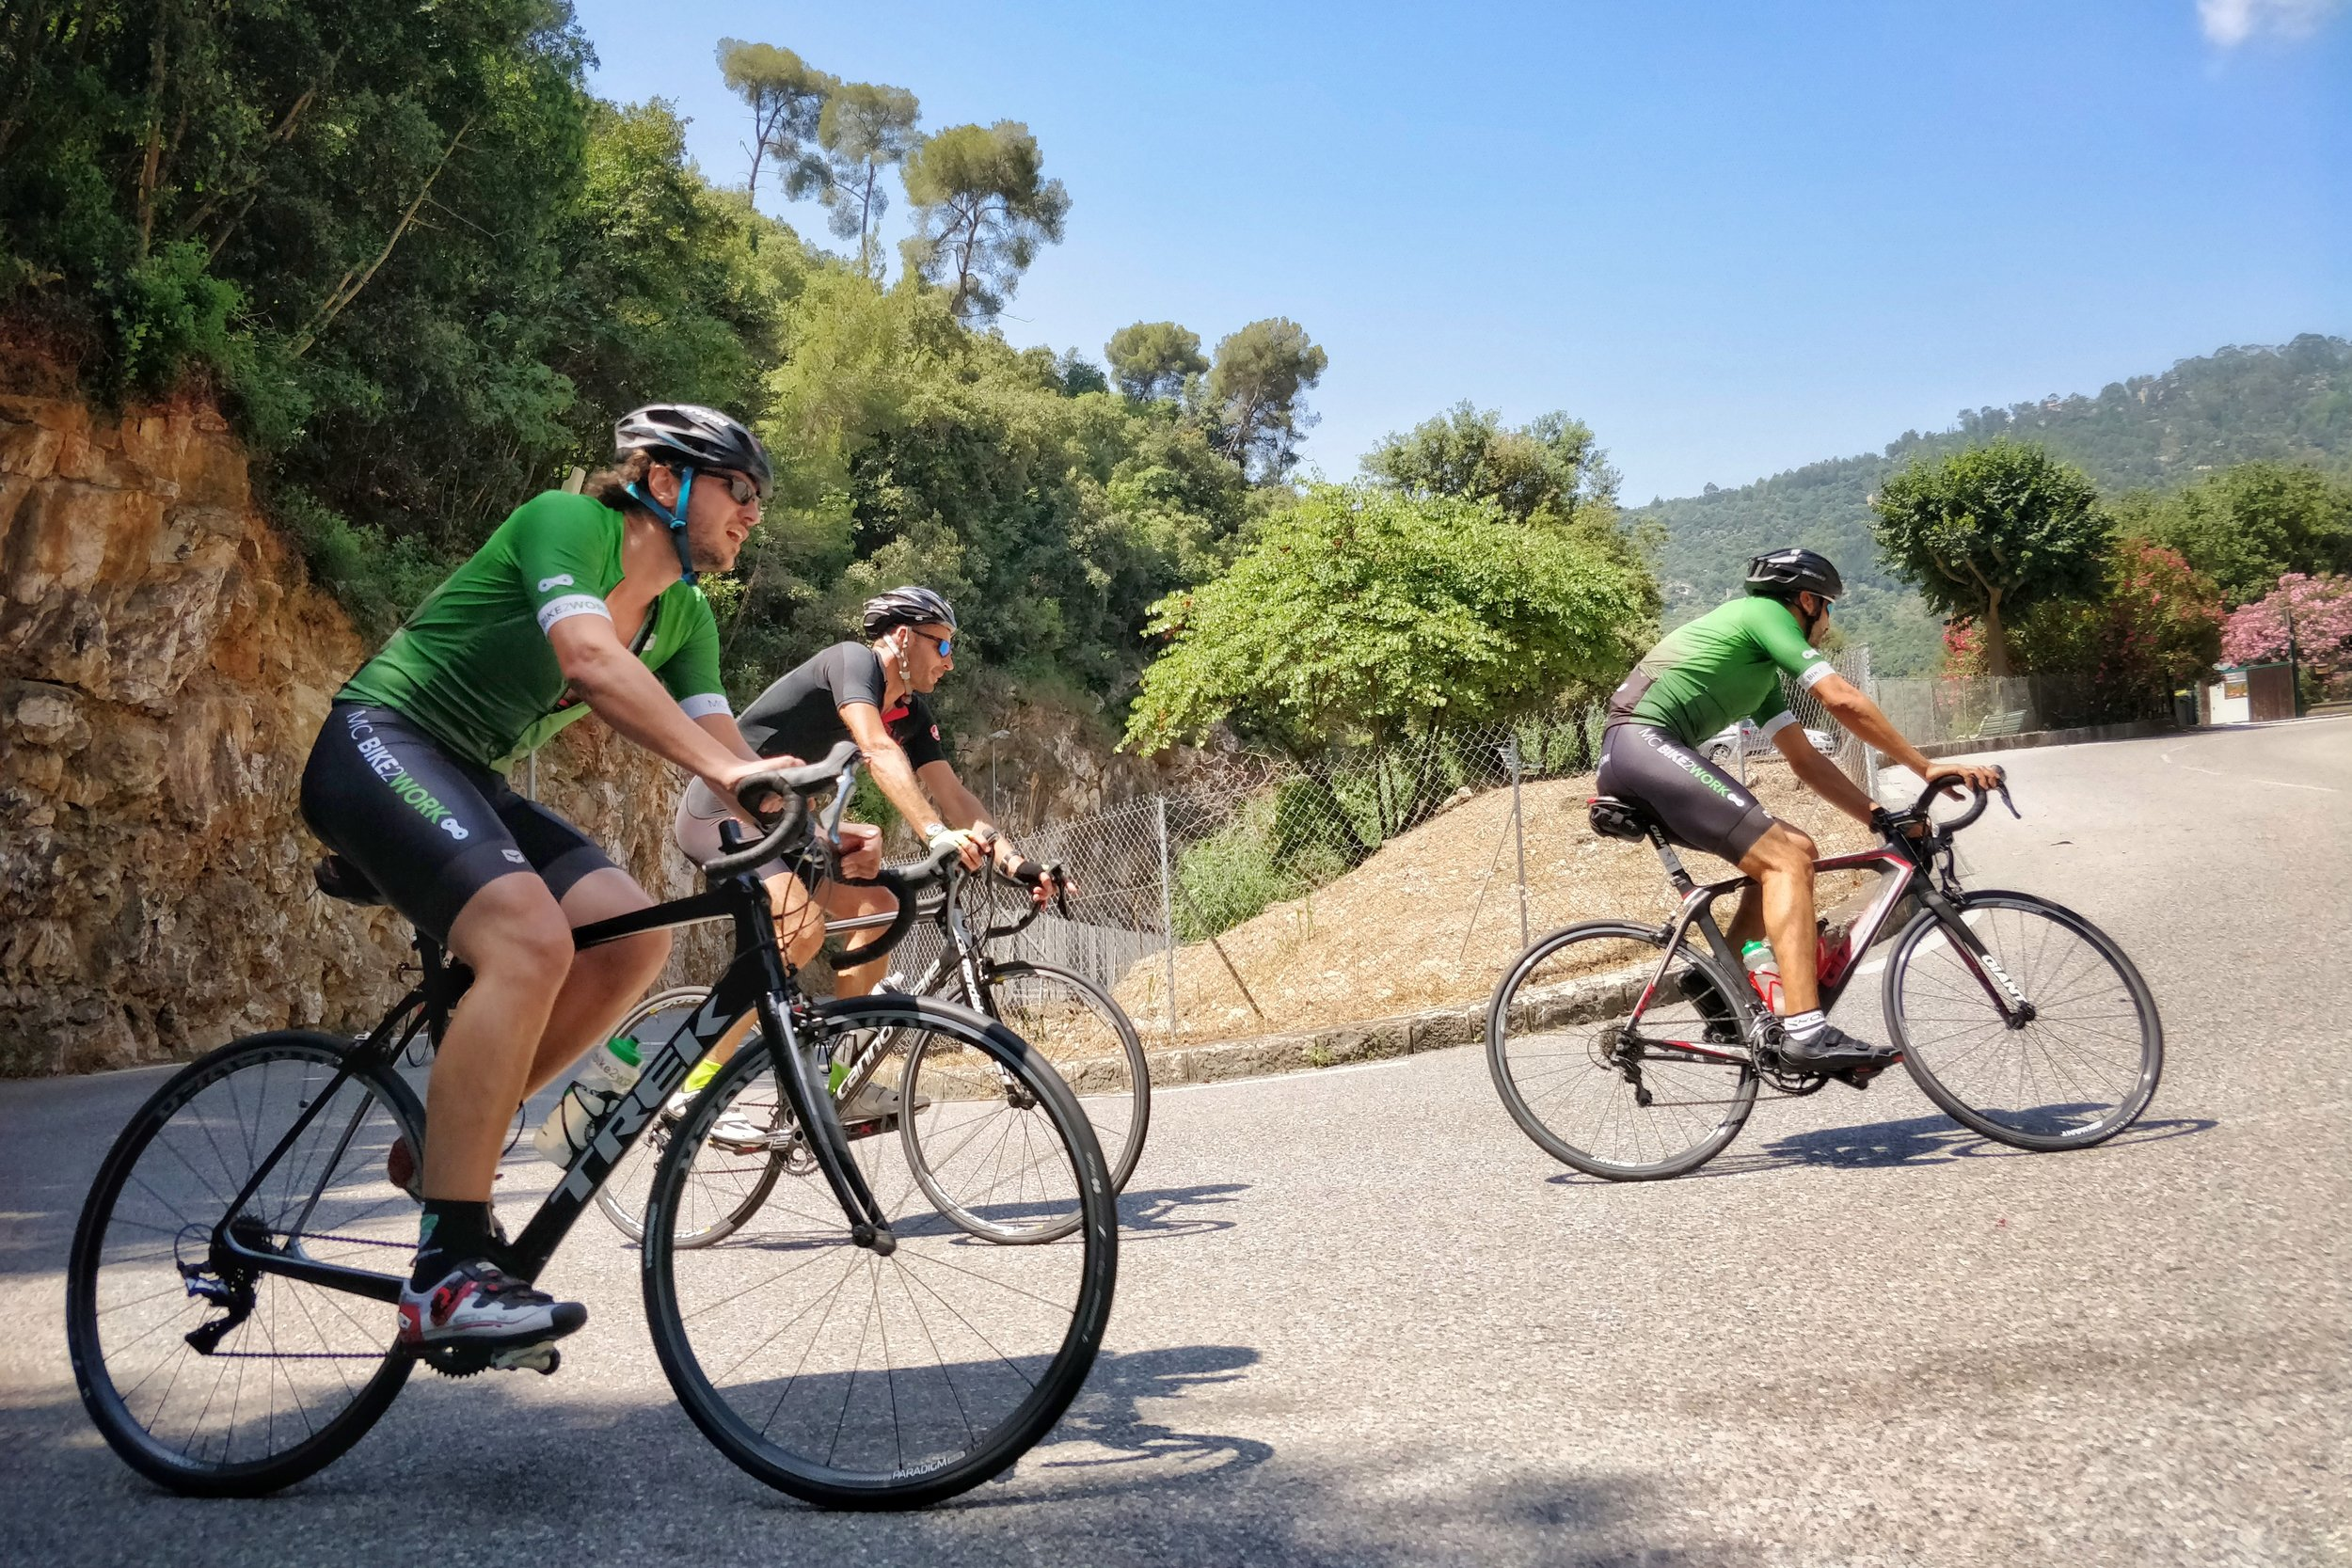 2018-07-05 MC Bike2Work Lunch Climb Ride Eze Copyright & Photo Ivan Blanco Vilar (15).jpeg